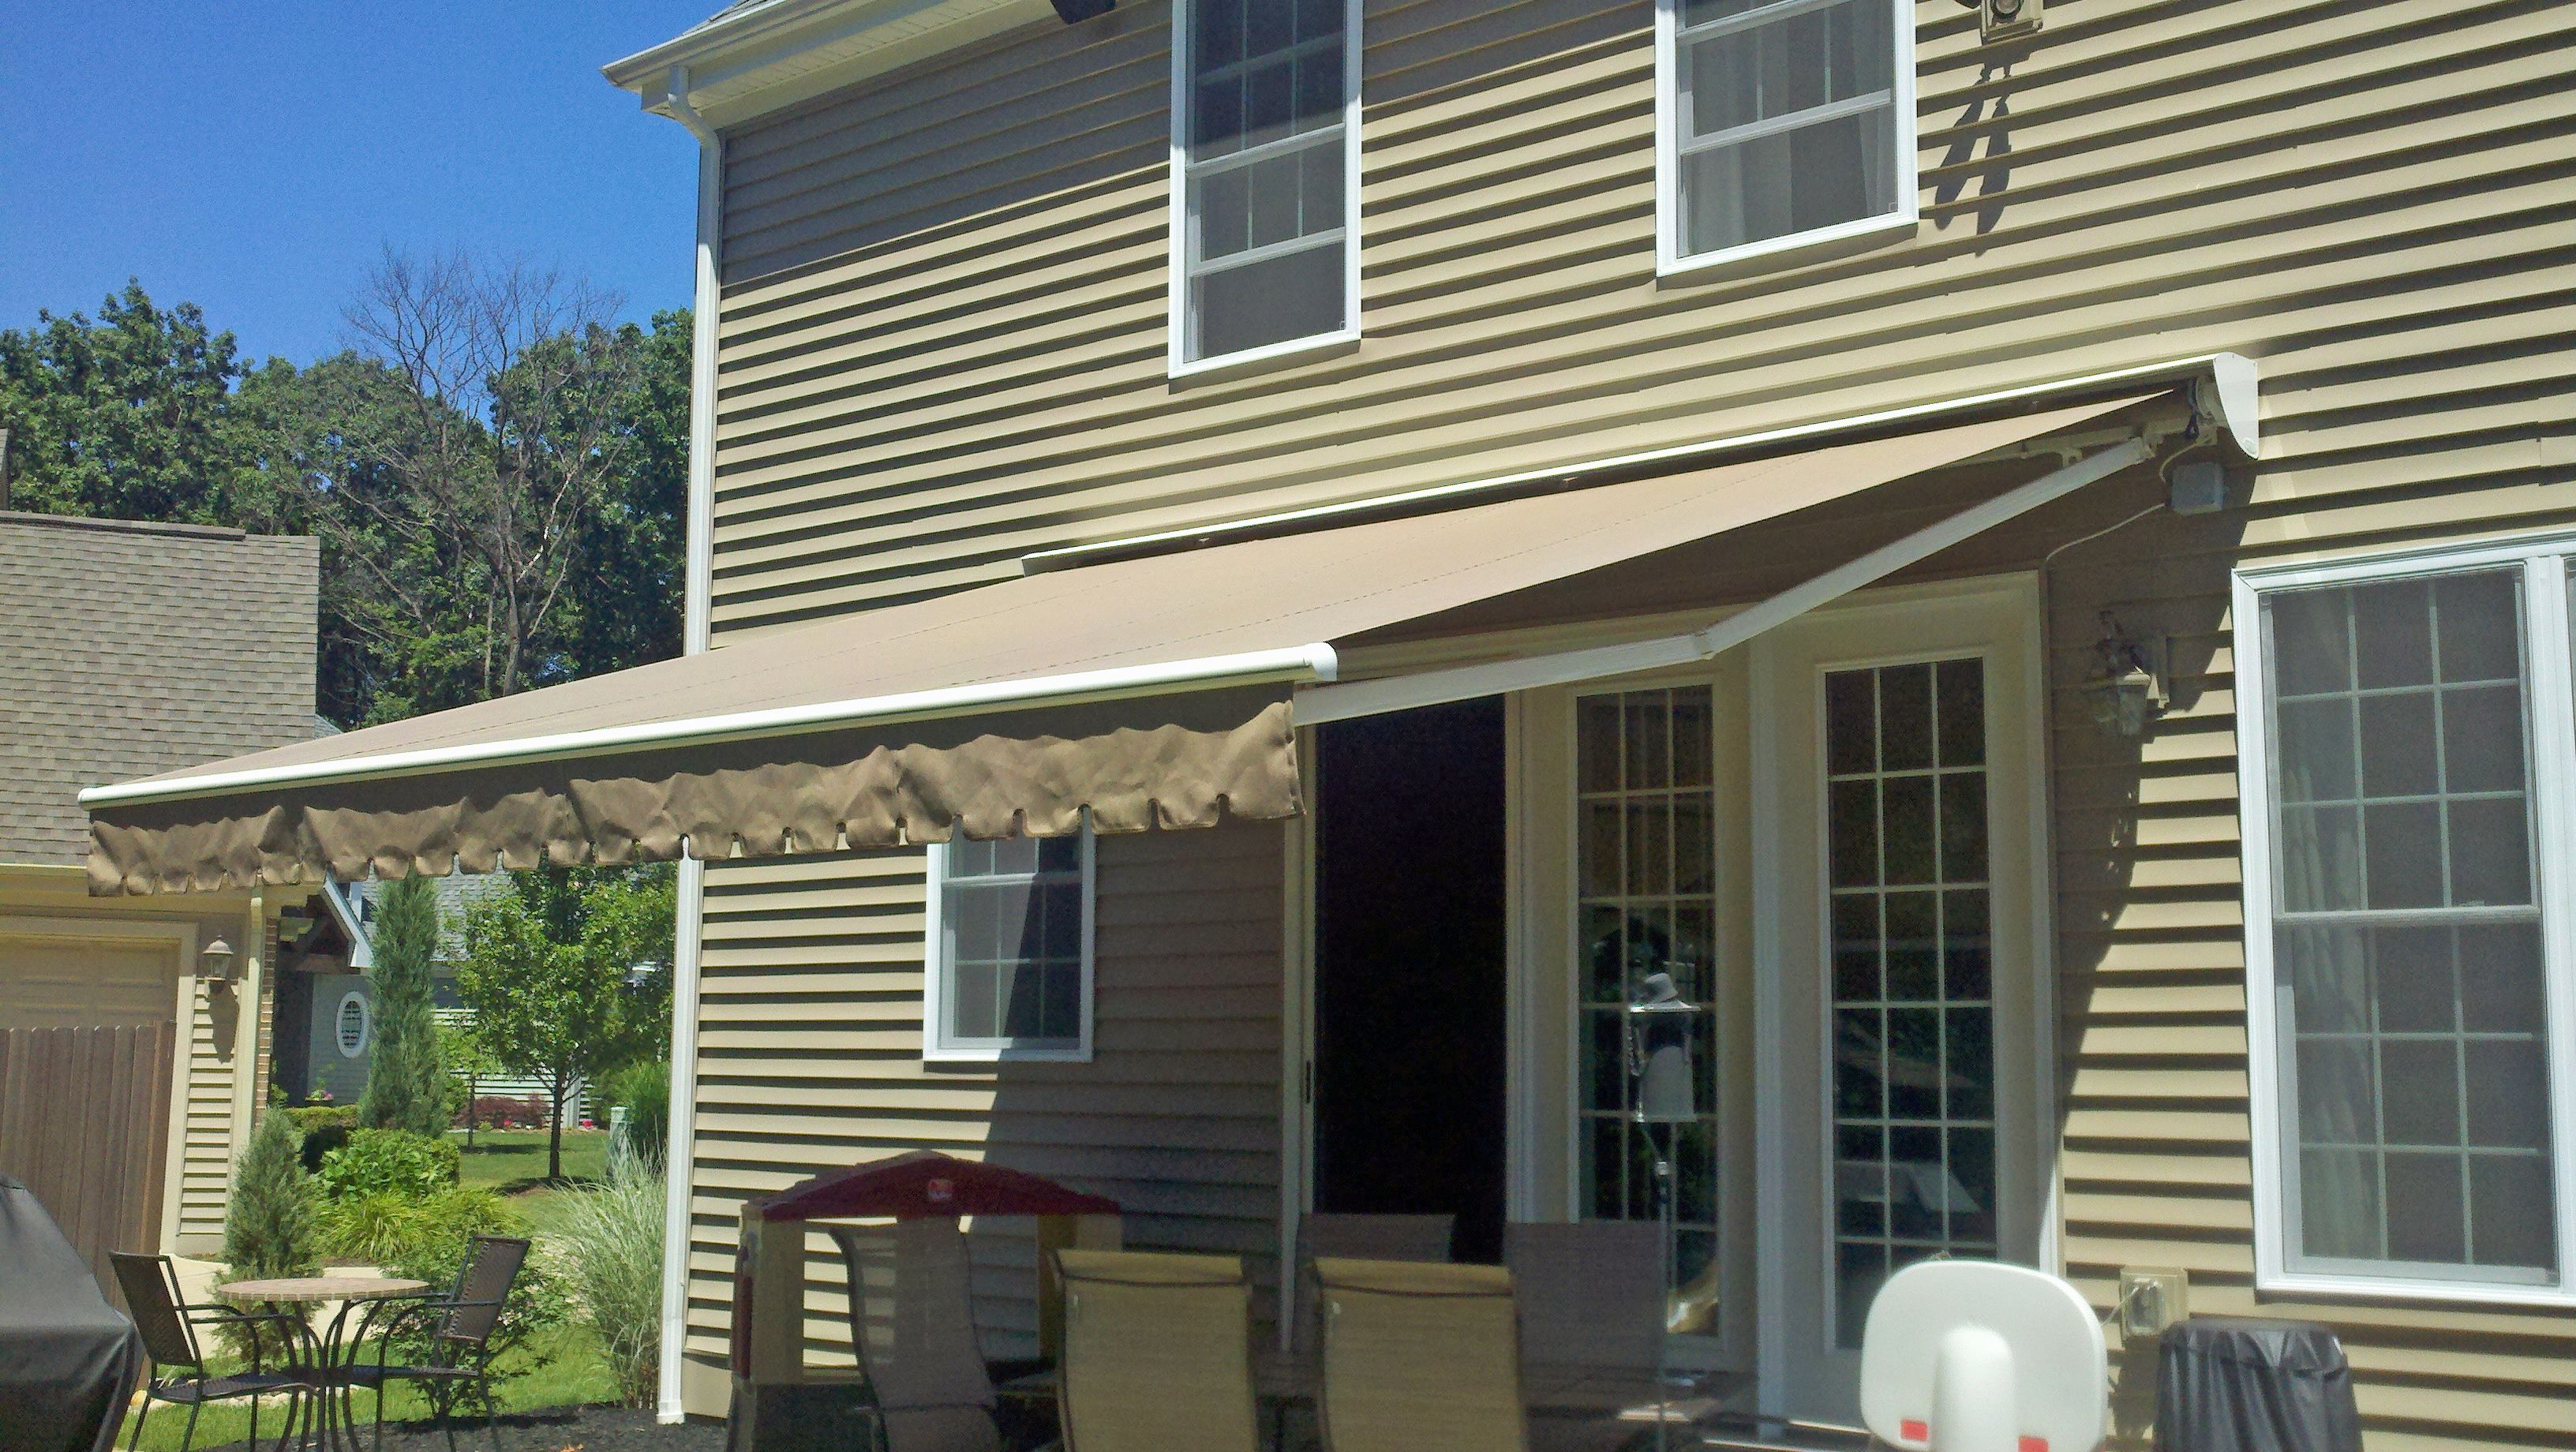 carport awning decks how awnings over build sails brisbane to blinds for backyard full deck carports a sail of covers large size shade